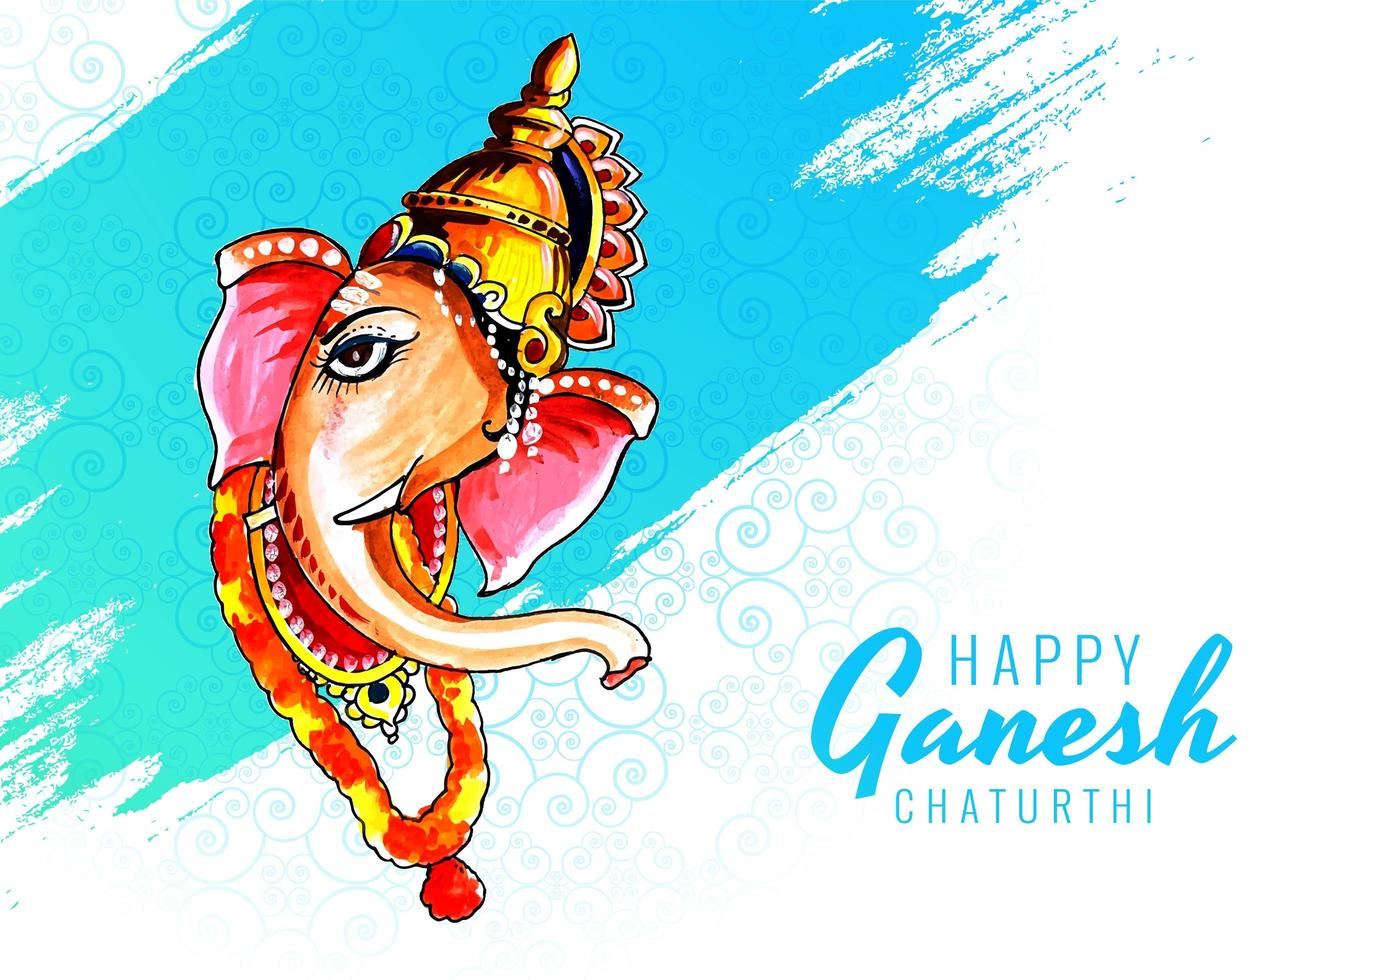 Lord Ganesha Face Profile for Ganesh Chaturthi Festival Background vector